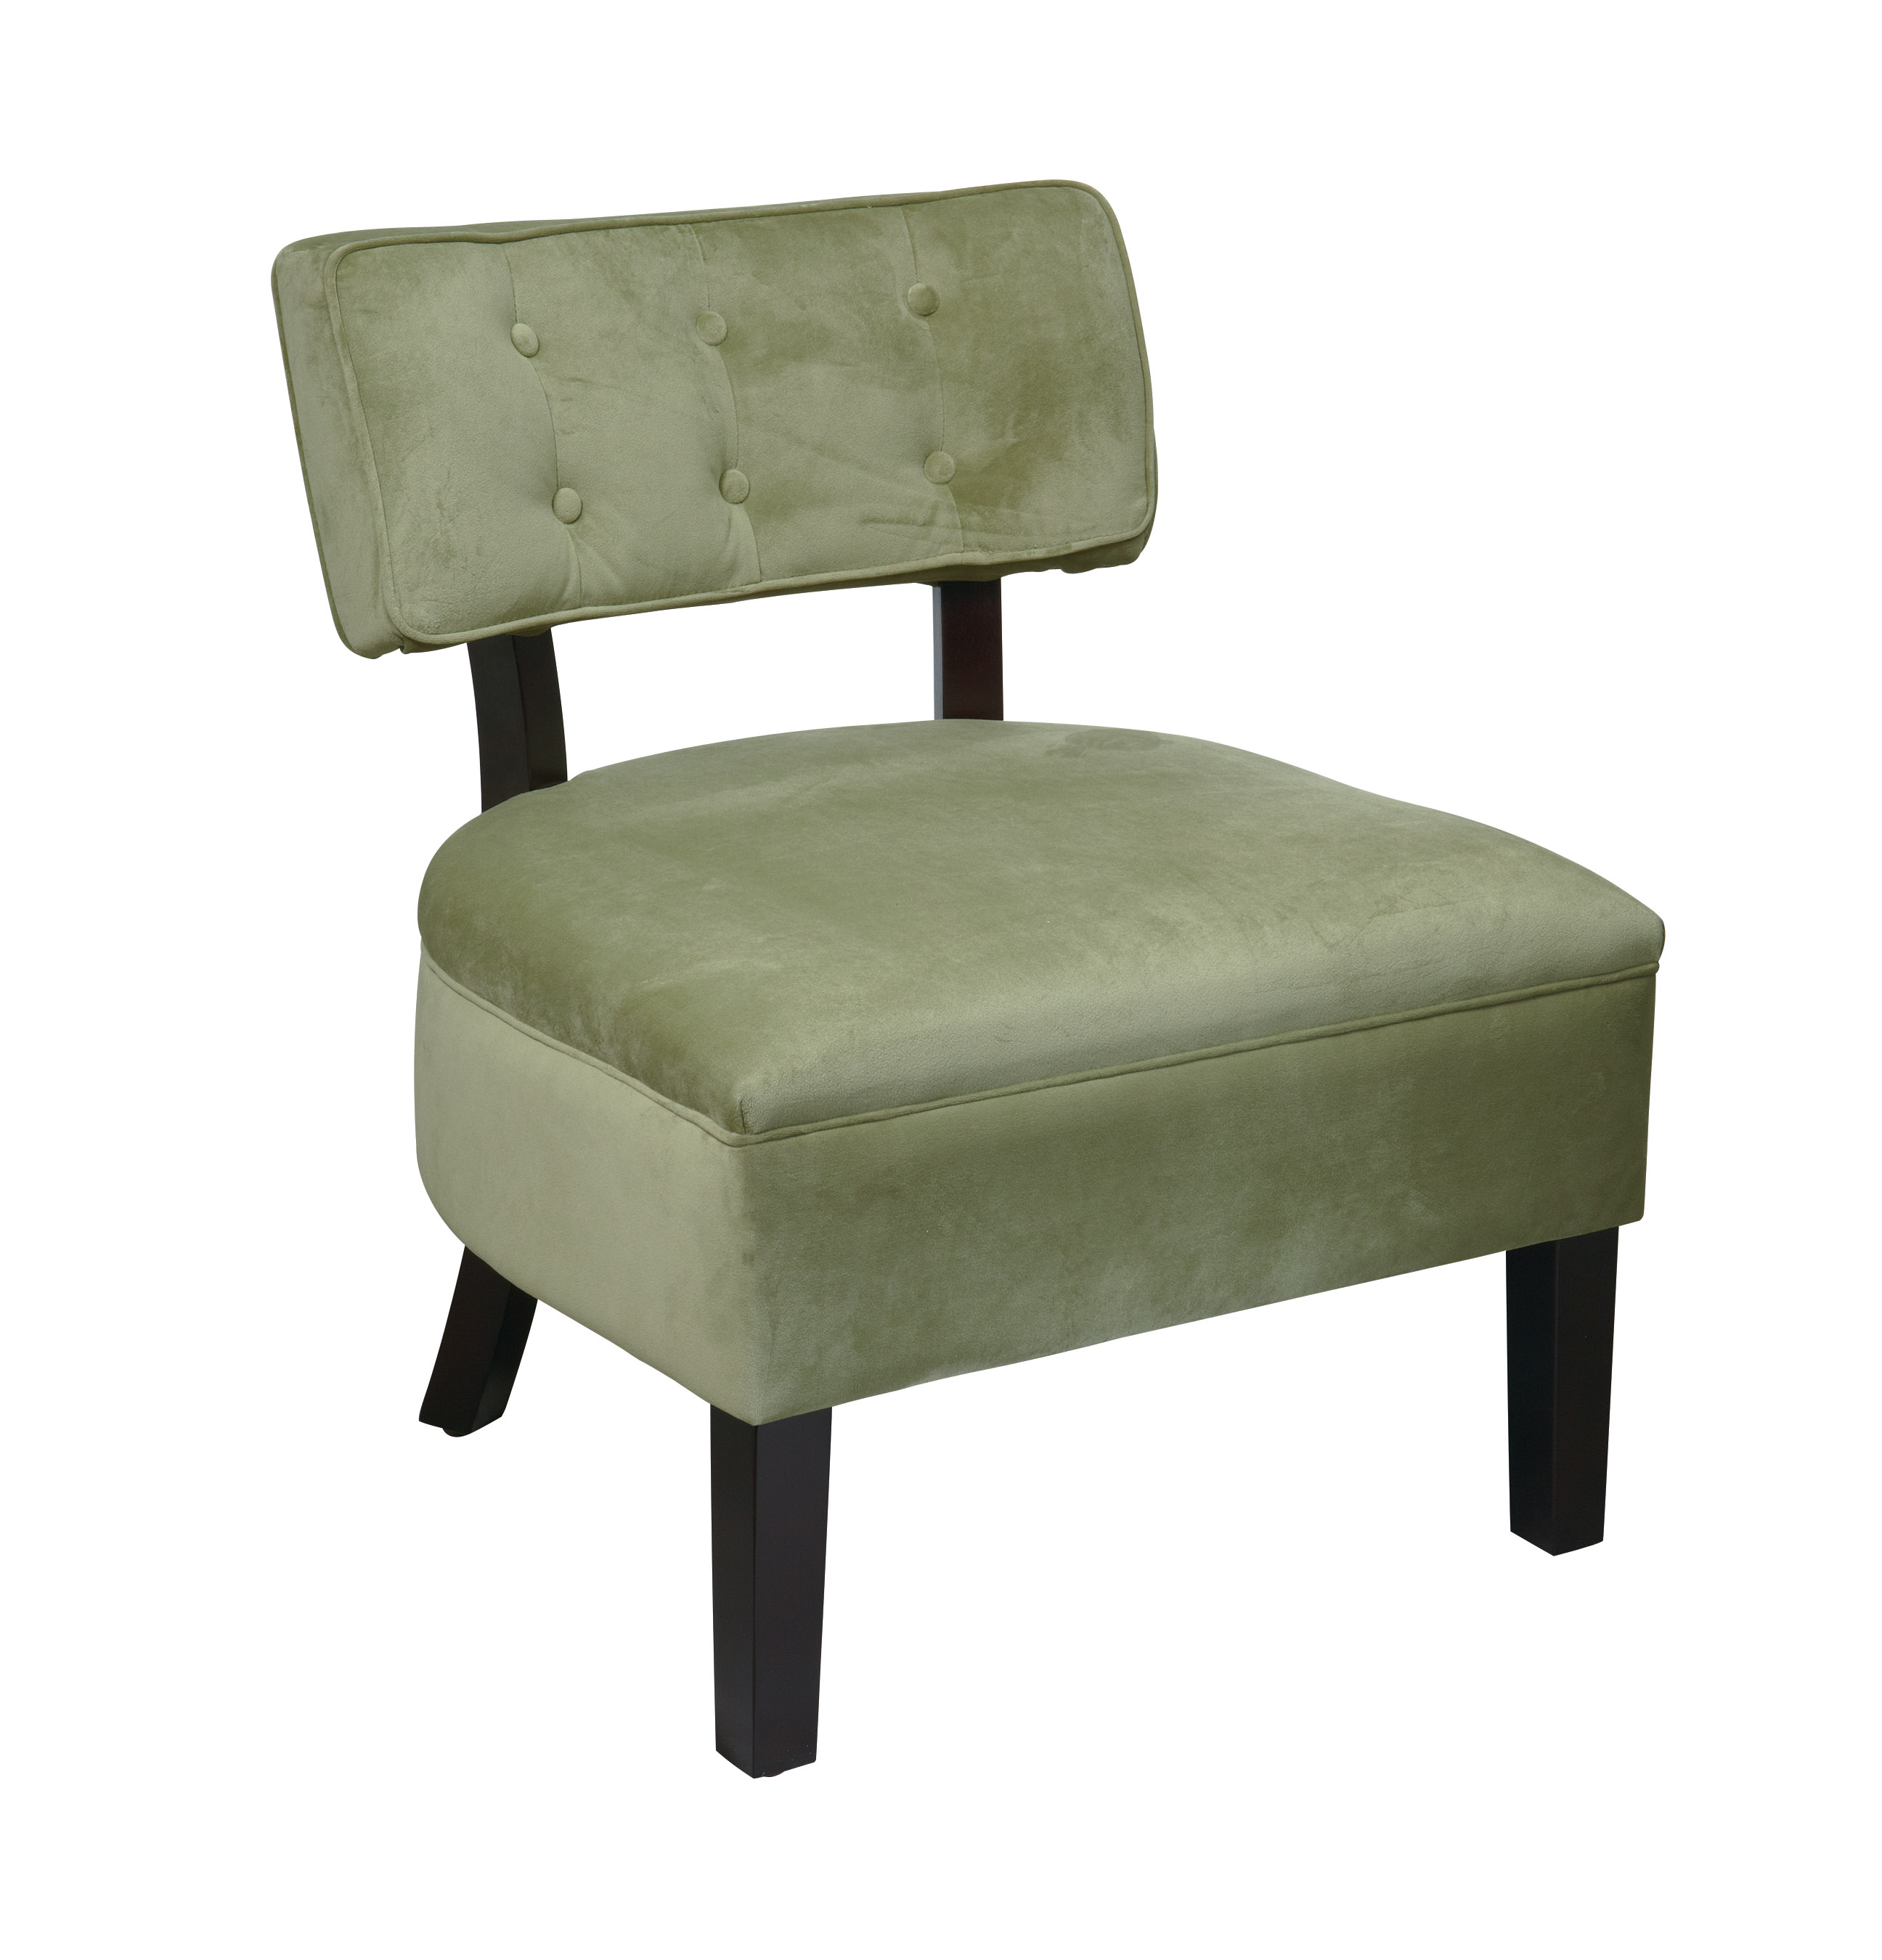 Green Accent Chair on teal swivel chair